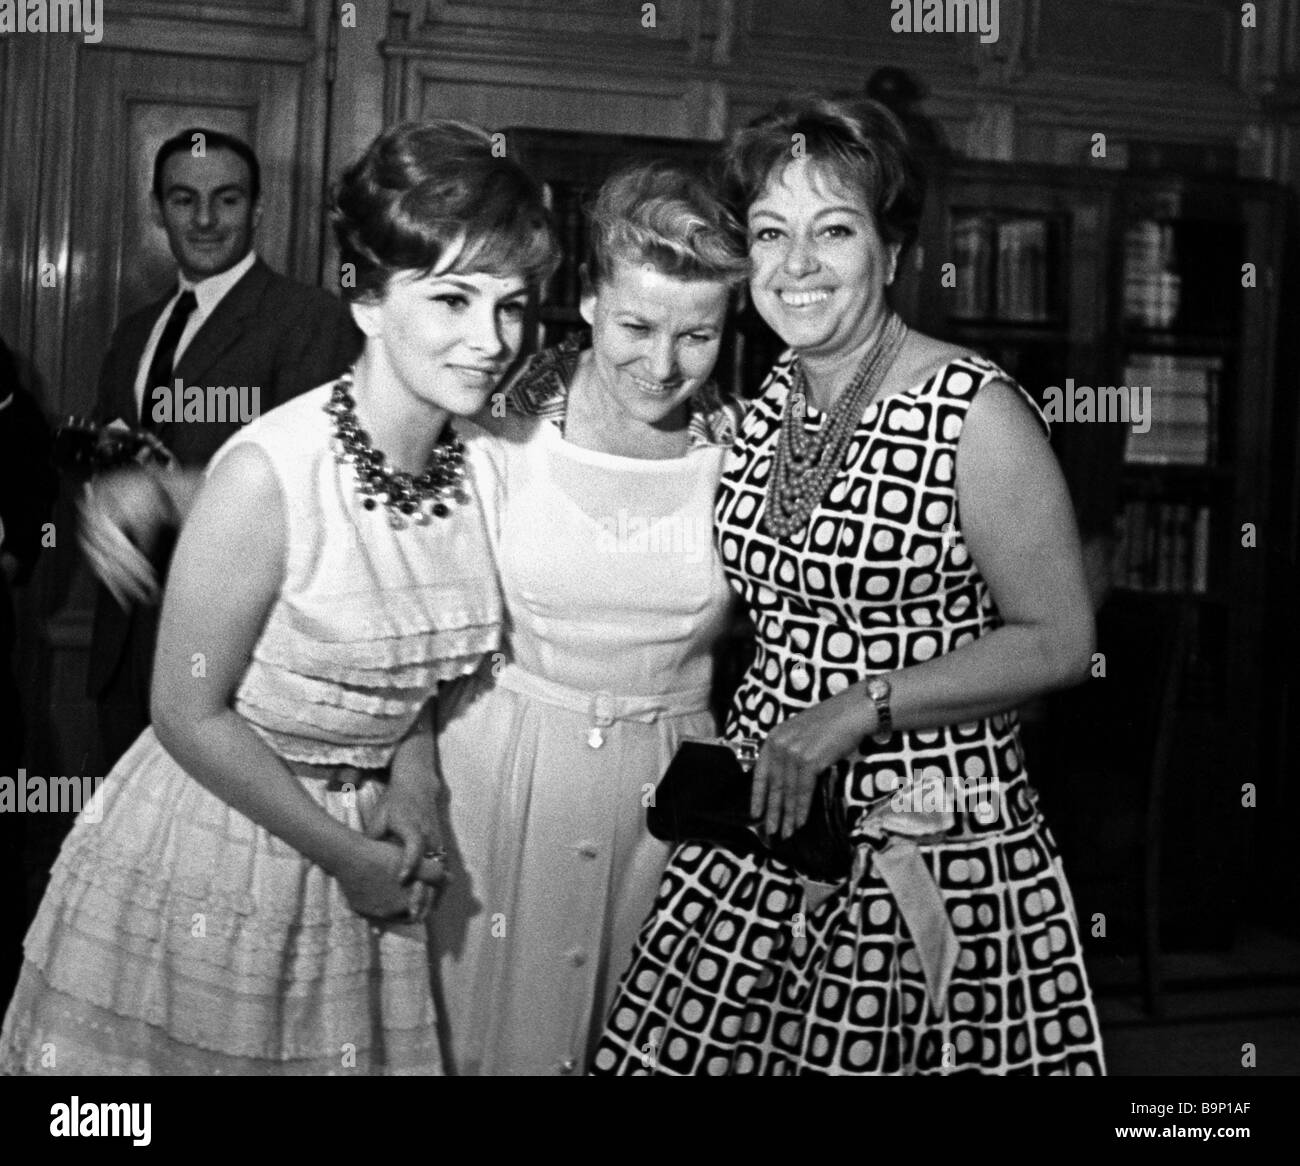 Italian actresses Gina Lollobrigida left and Marisa Merlini right attend reception organized by Soviet Culture Minister - Stock Image